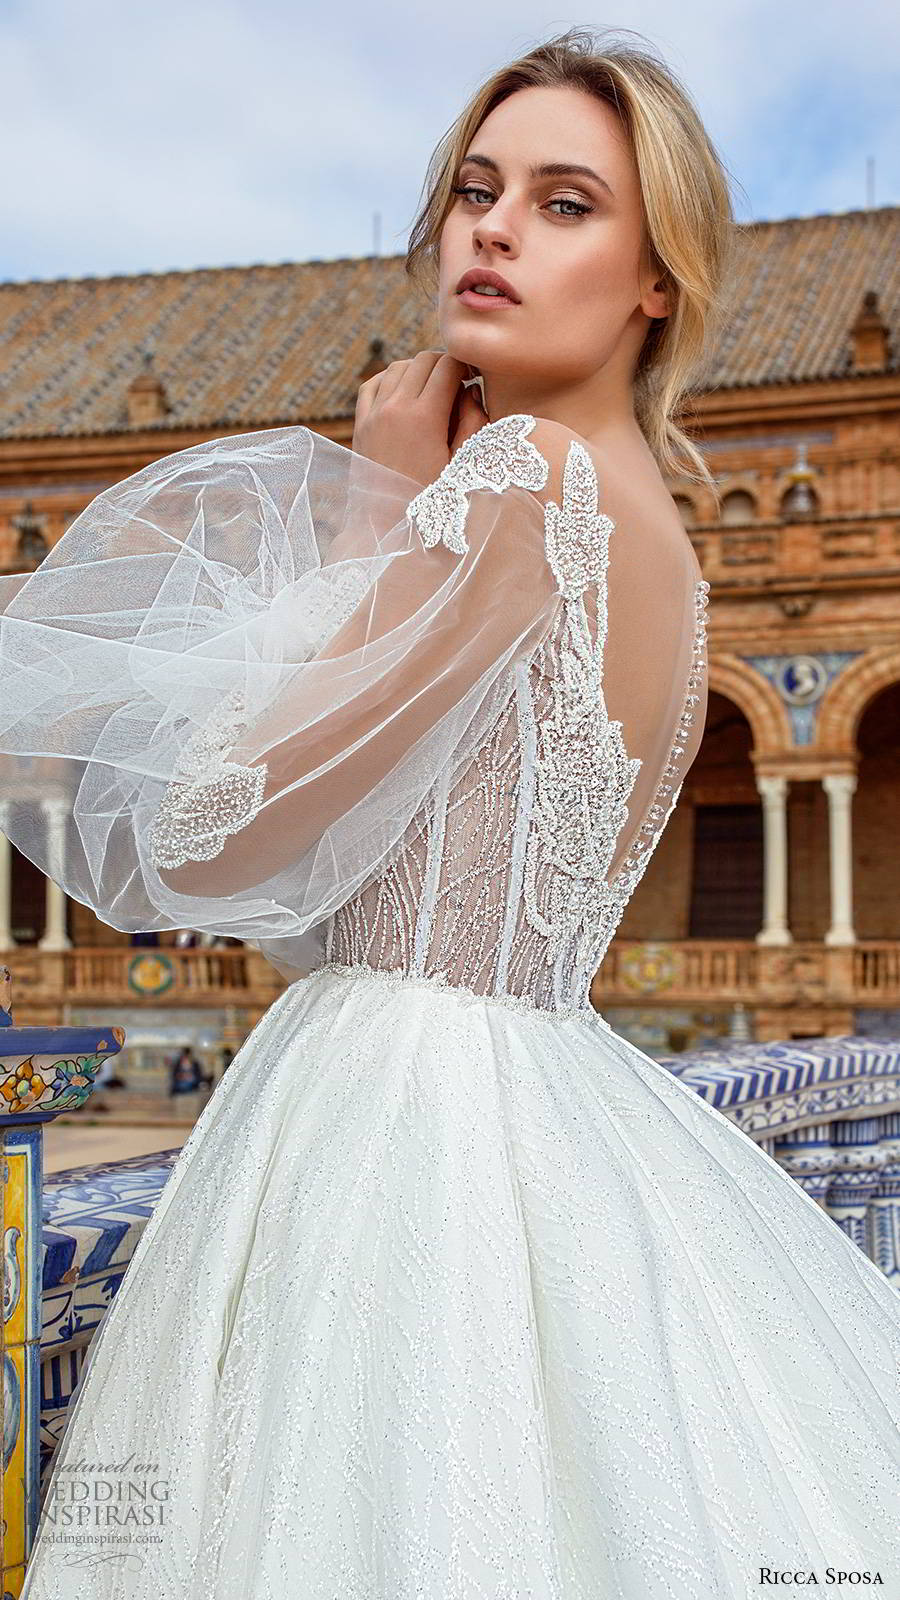 ricca sposa 2019 bridal sheer balloon bishop sleeves off shoulder v neckline embellished corset bodice romantic a line ball gown wedding dress sheer back cathedral train (9) sv